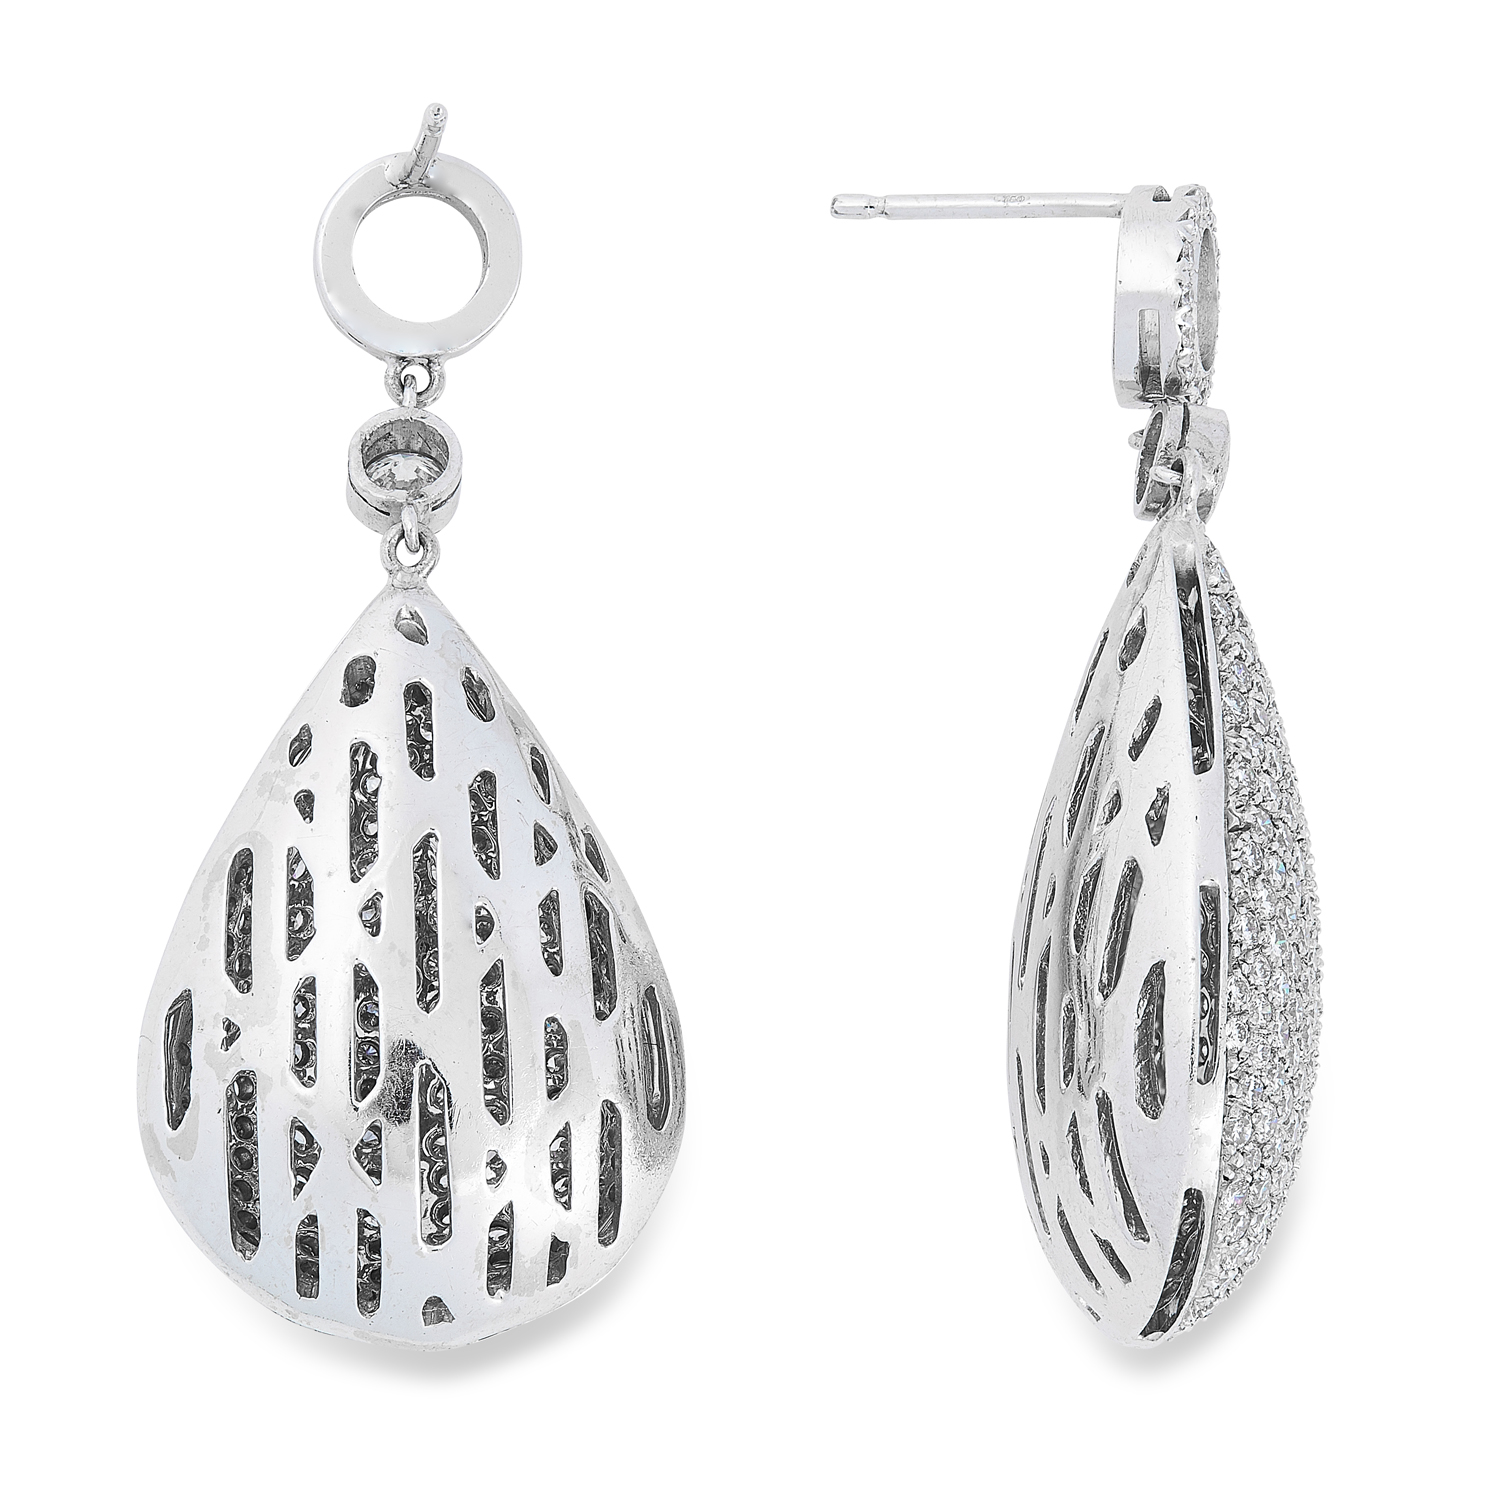 A DIAMOND PENDANT AND EARRINGS SUITE comprising a pair of earrings, pendant and chain, in teardrop - Image 4 of 4